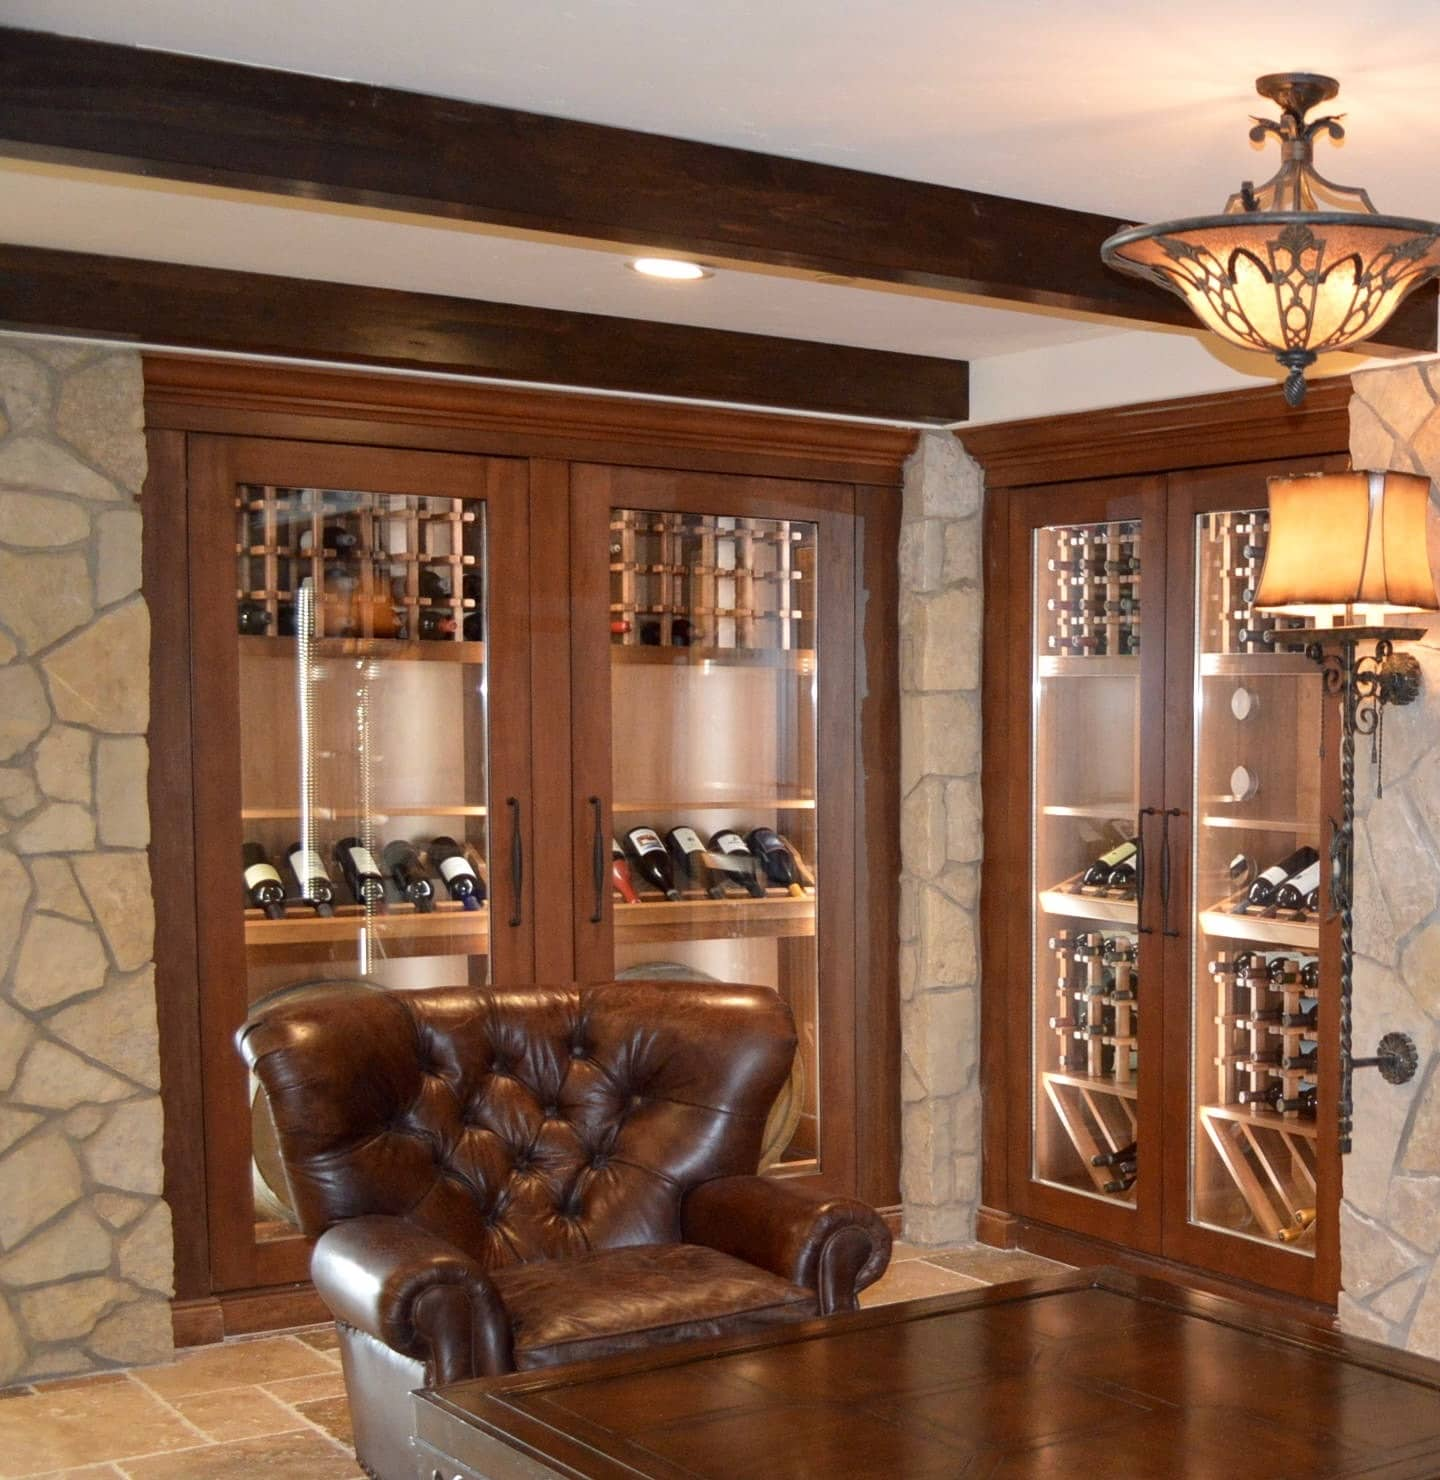 custom cooling system setup for wine cabinets in laguna beach. Black Bedroom Furniture Sets. Home Design Ideas